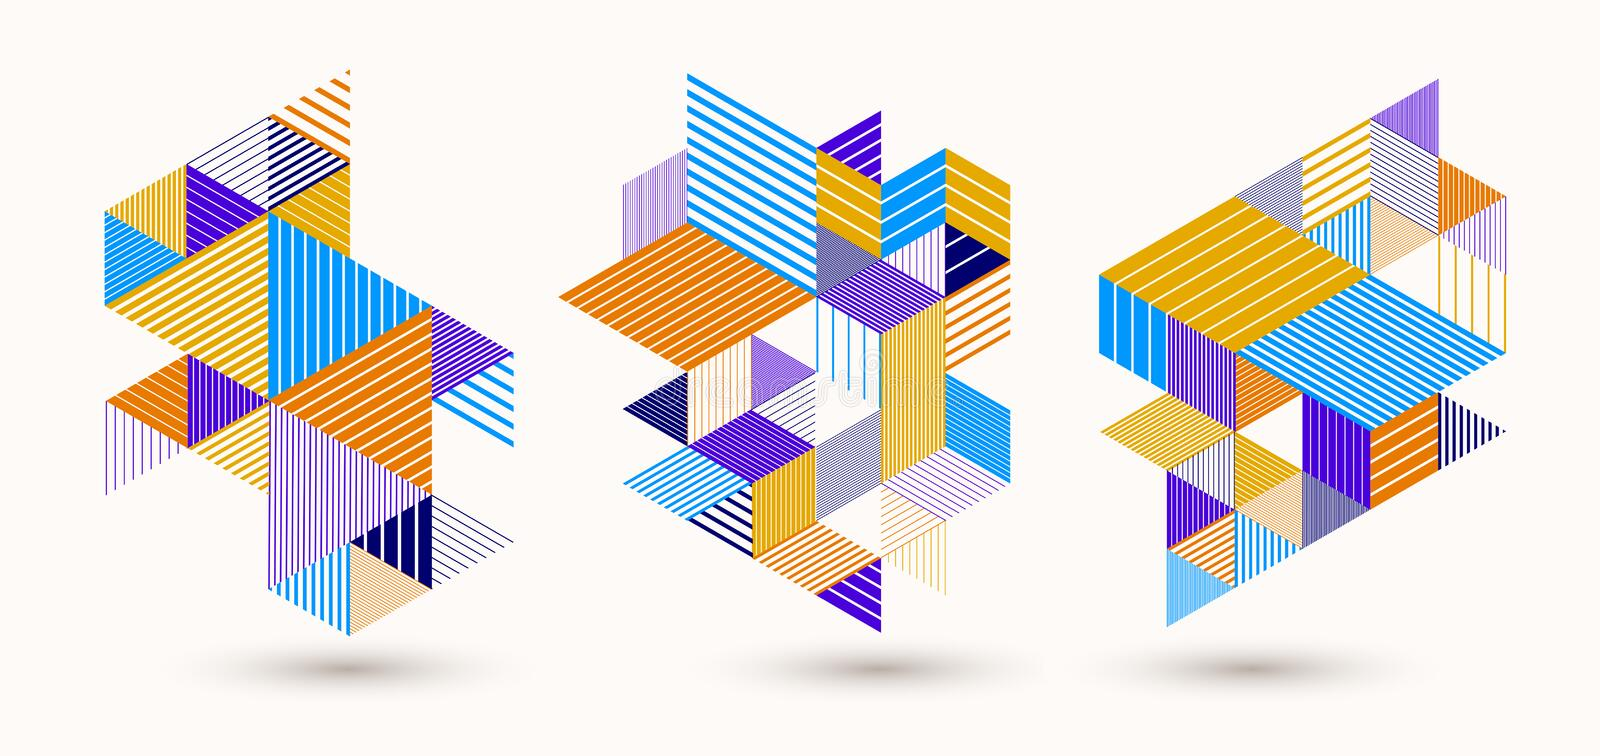 Line design 3D cubes and triangles abstract backgrounds set, polygonal low poly isometric retro style templates. Stripy graphic royalty free illustration